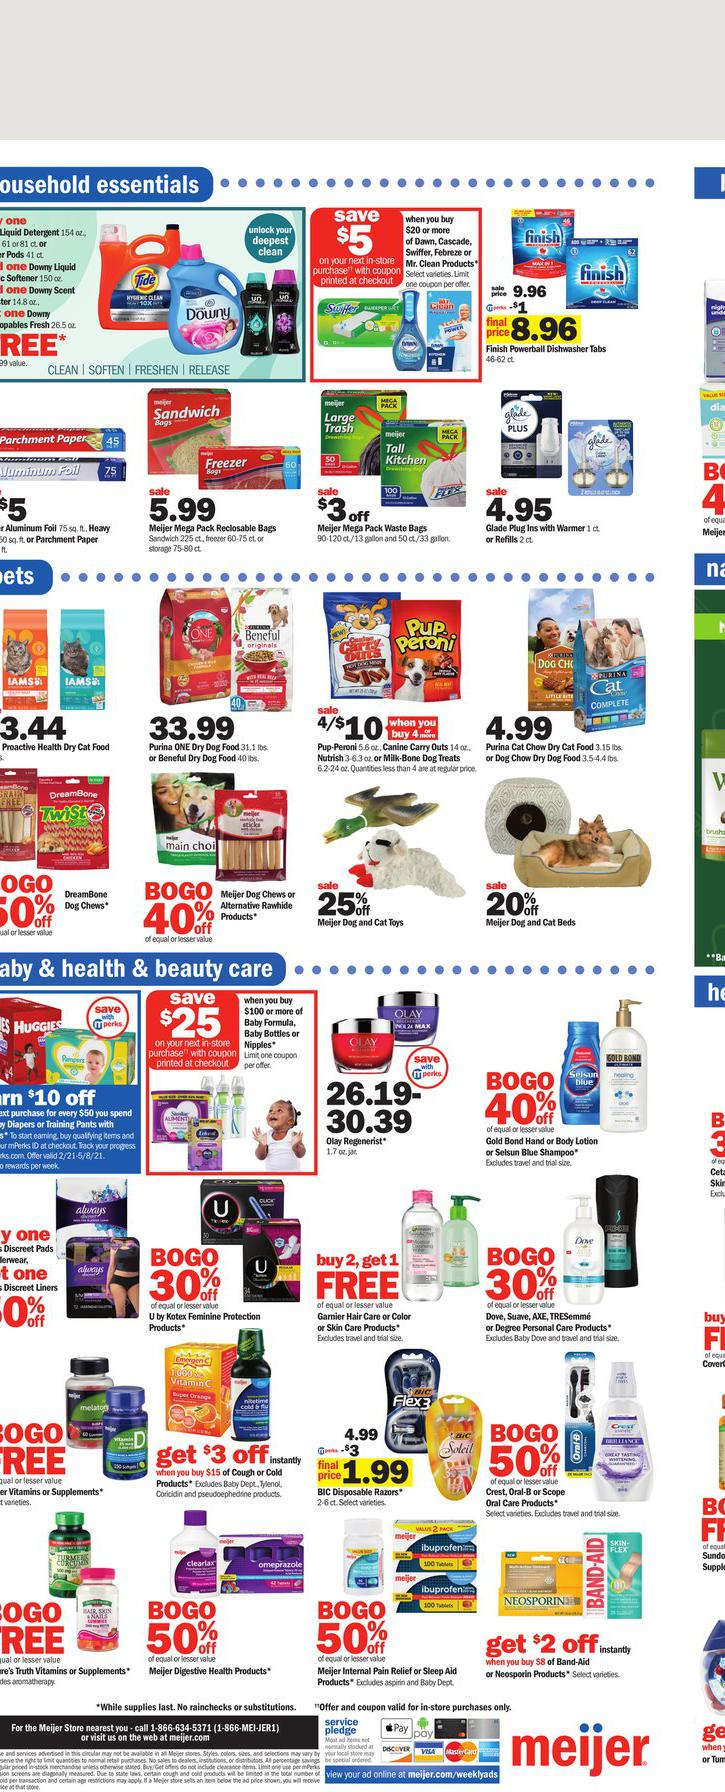 21.02.2021 Meijer ad 15. page